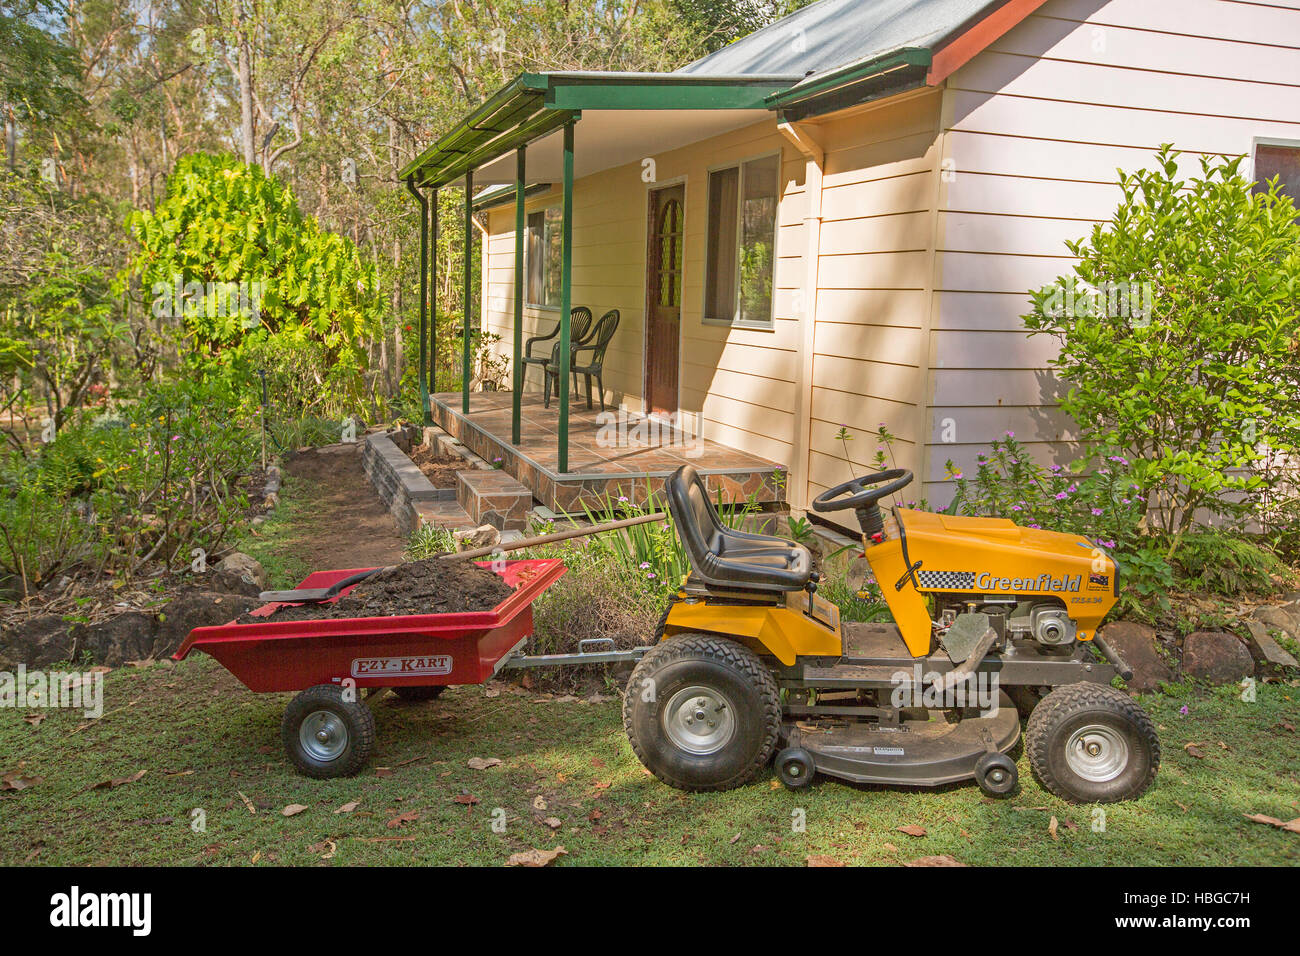 Yellow ride-on mower towing small red trailer full of soil on lawn ...